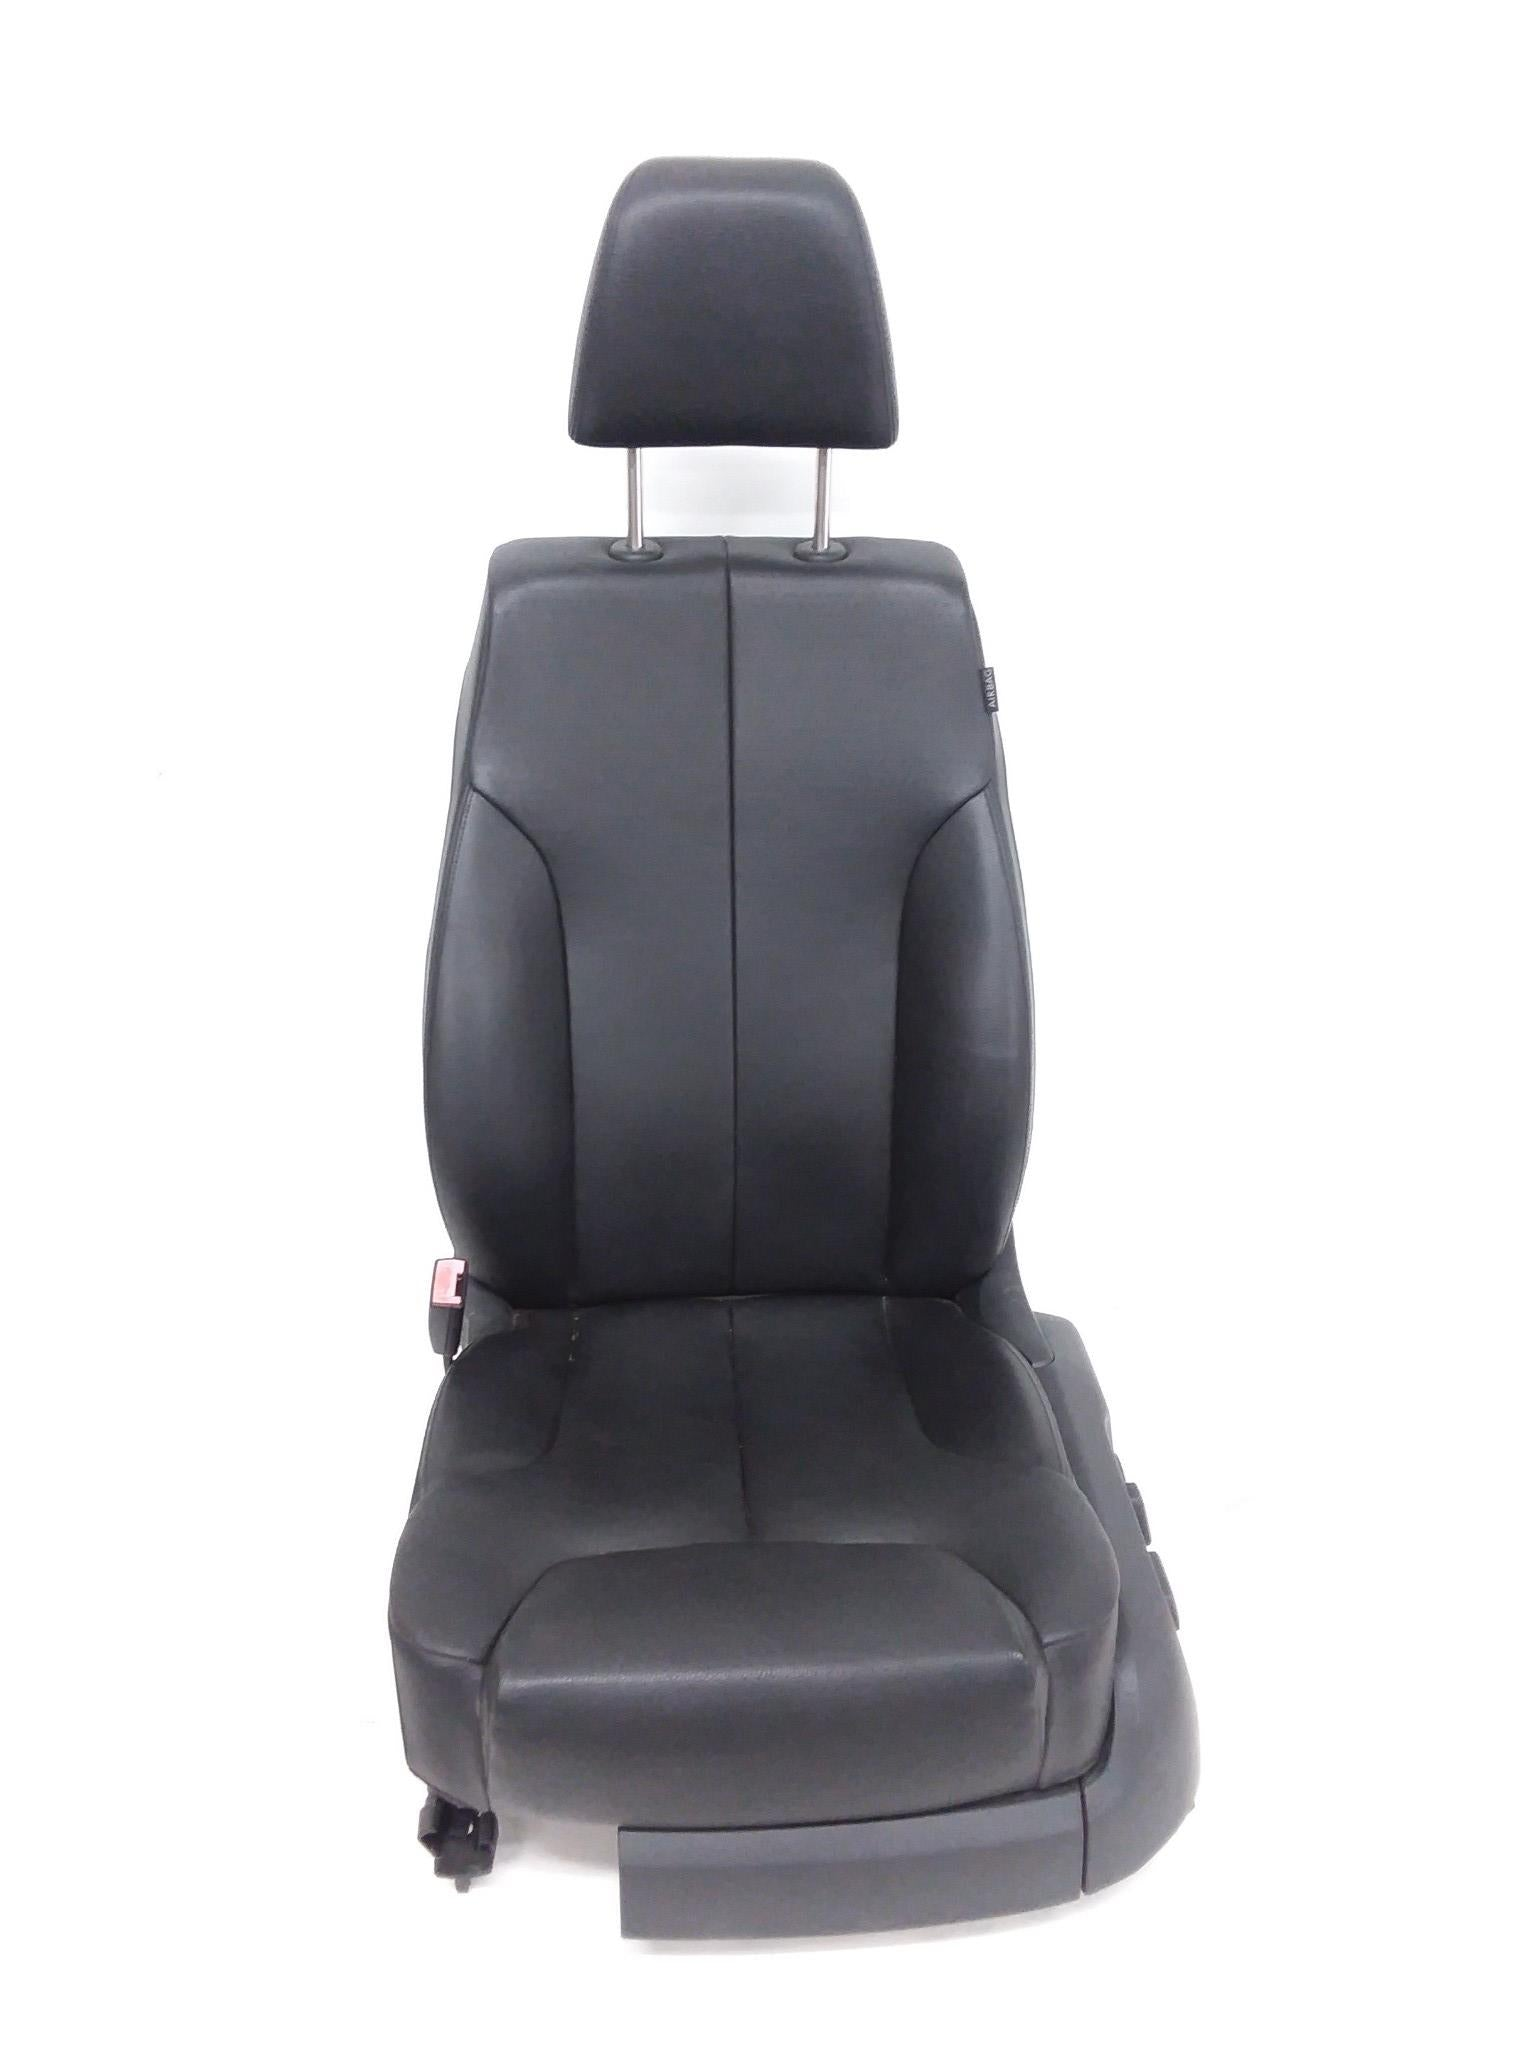 2009 2010 Volkswagen Passat Front Driver Left Seat Leather Black OEM